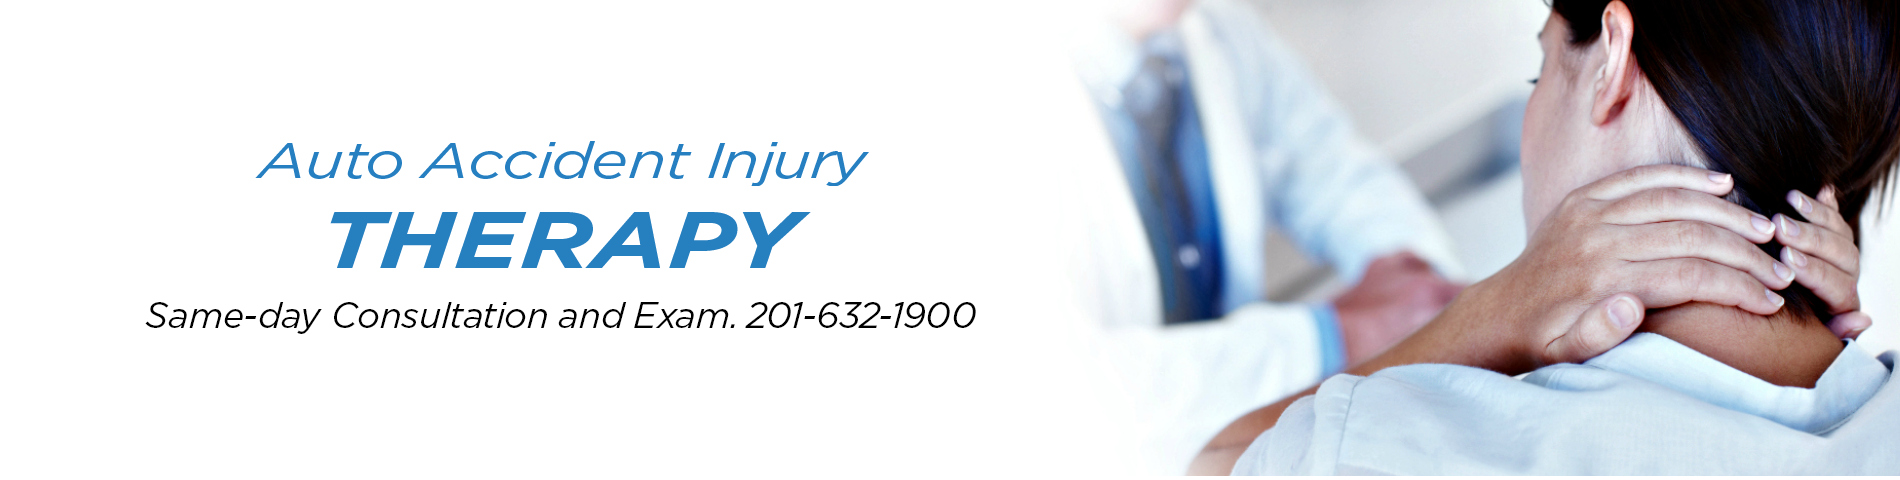 Auto Accident Injury Therapy Hackensack NJ